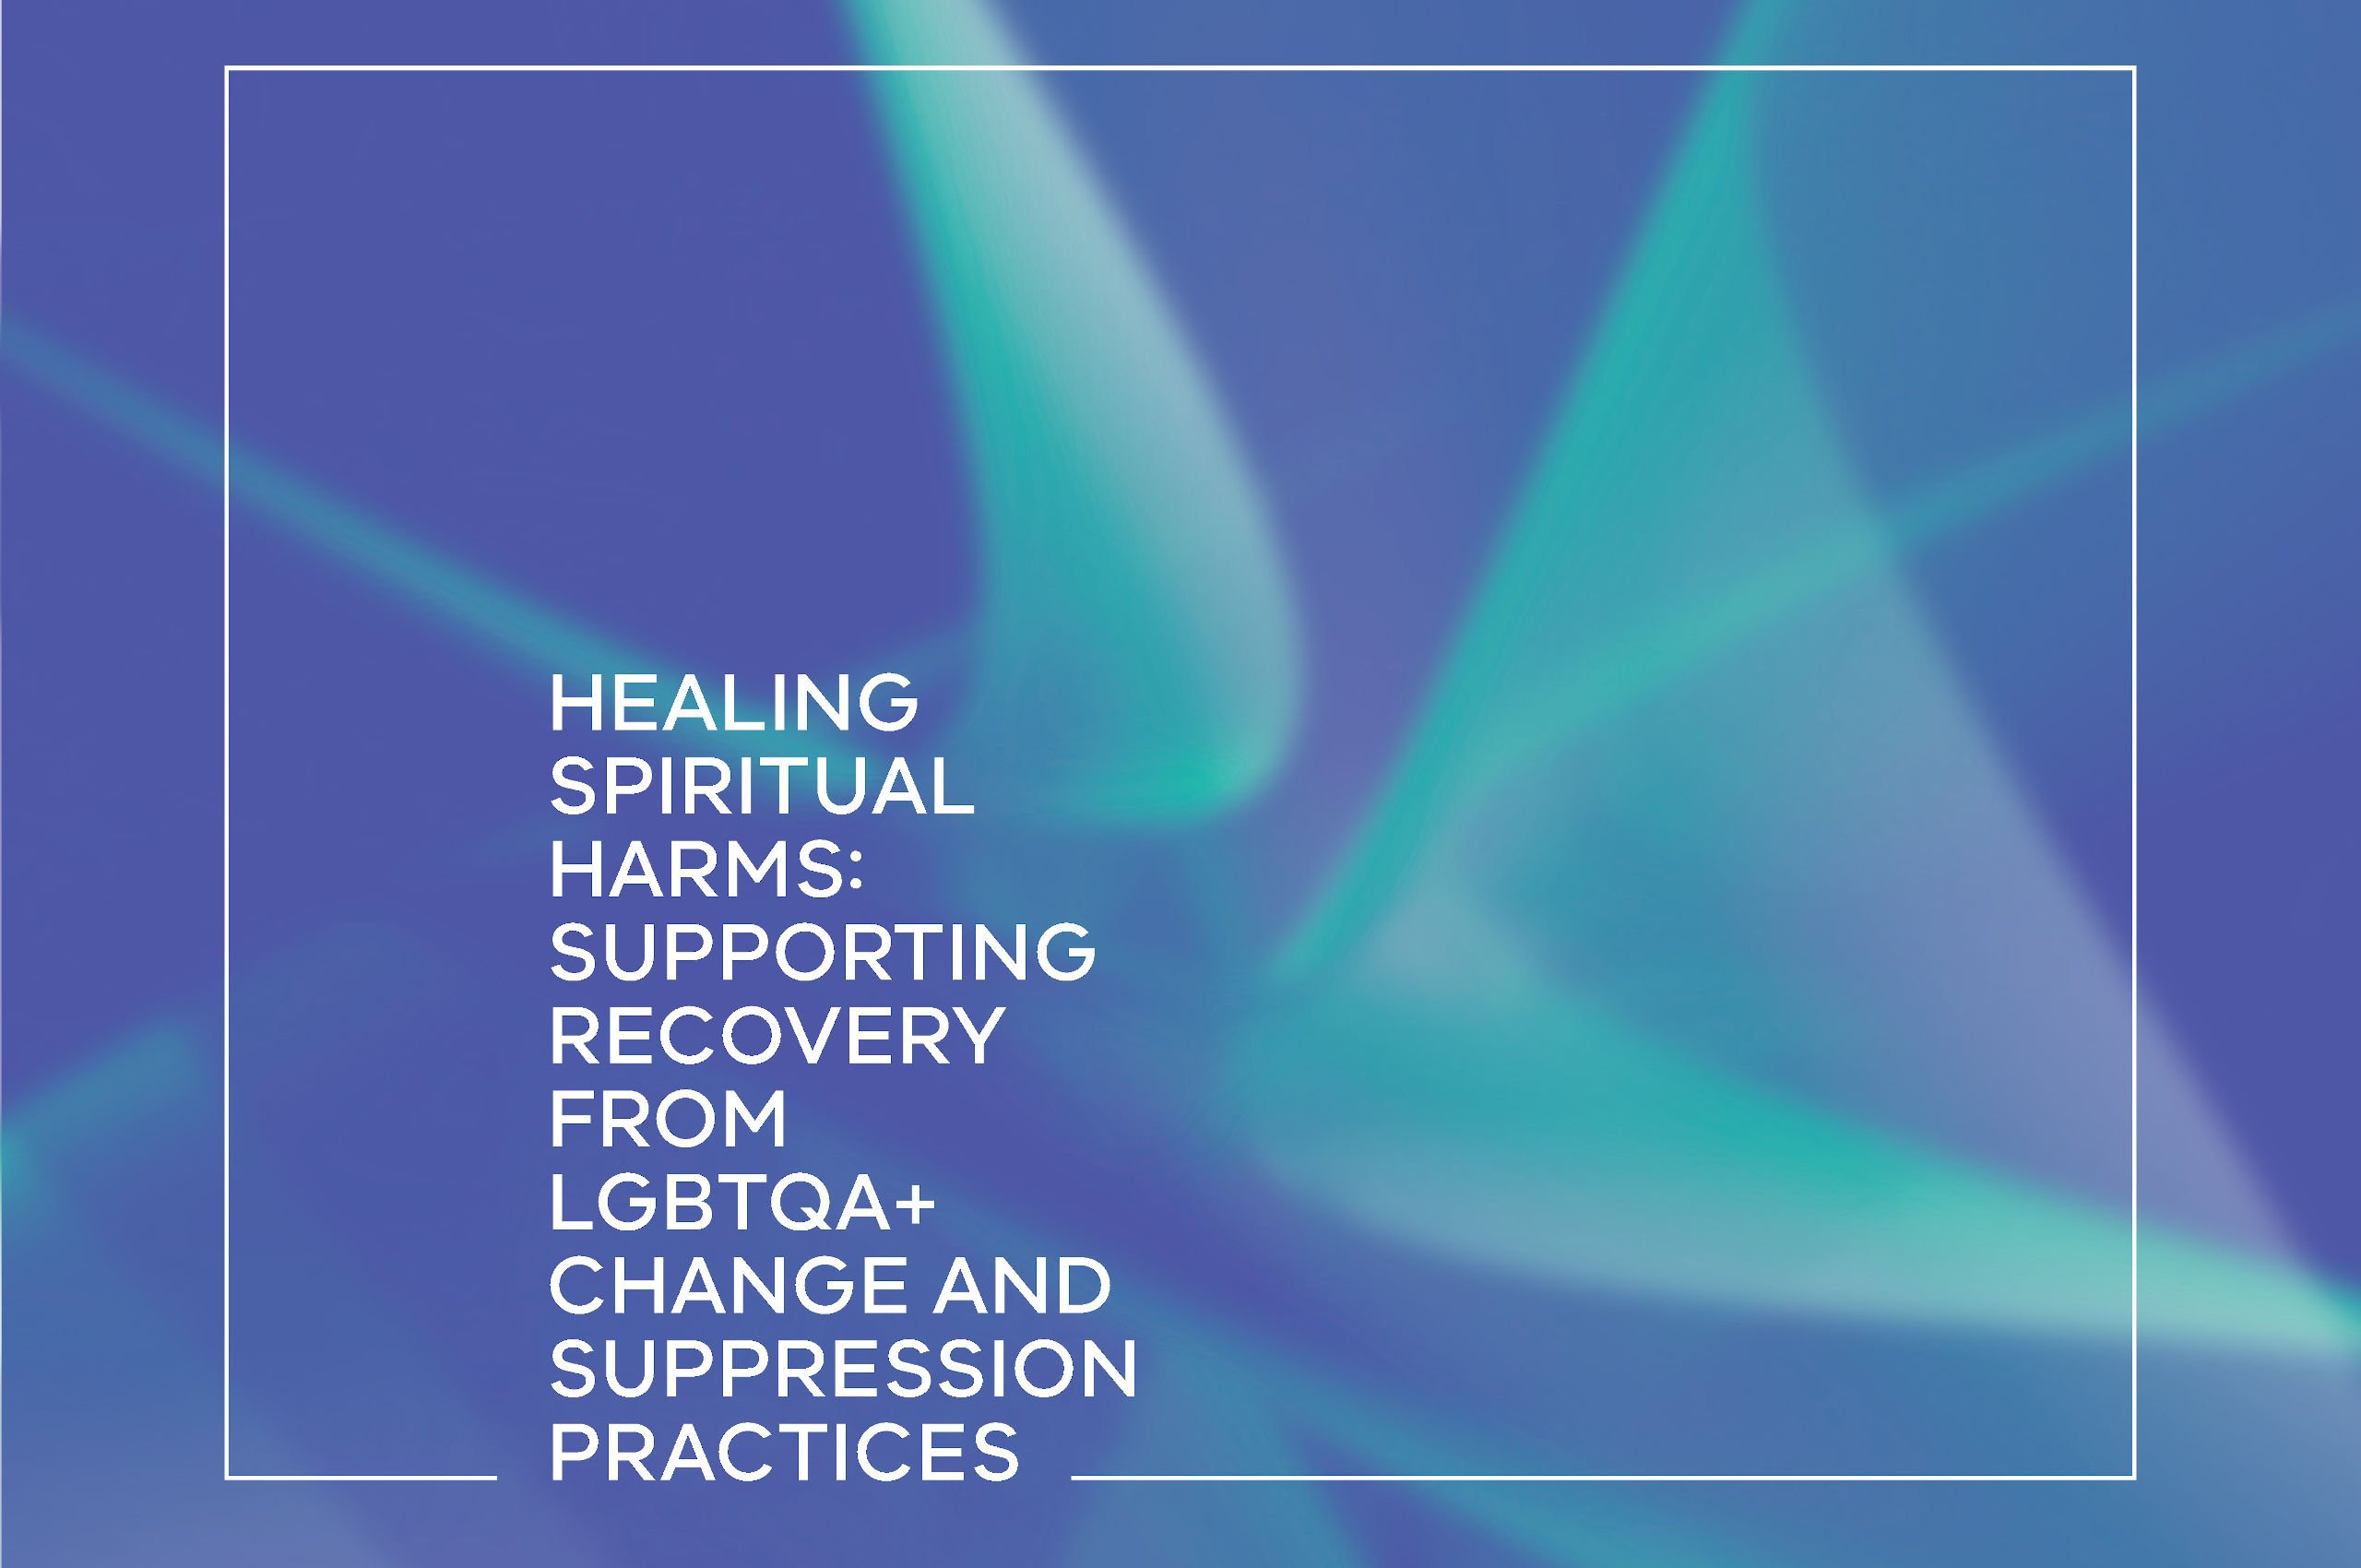 "Blue and teal abstract swirl design with white text ""Healing spiritual harms: Supporting recovery from LGBTQA+ change and suppression practices"